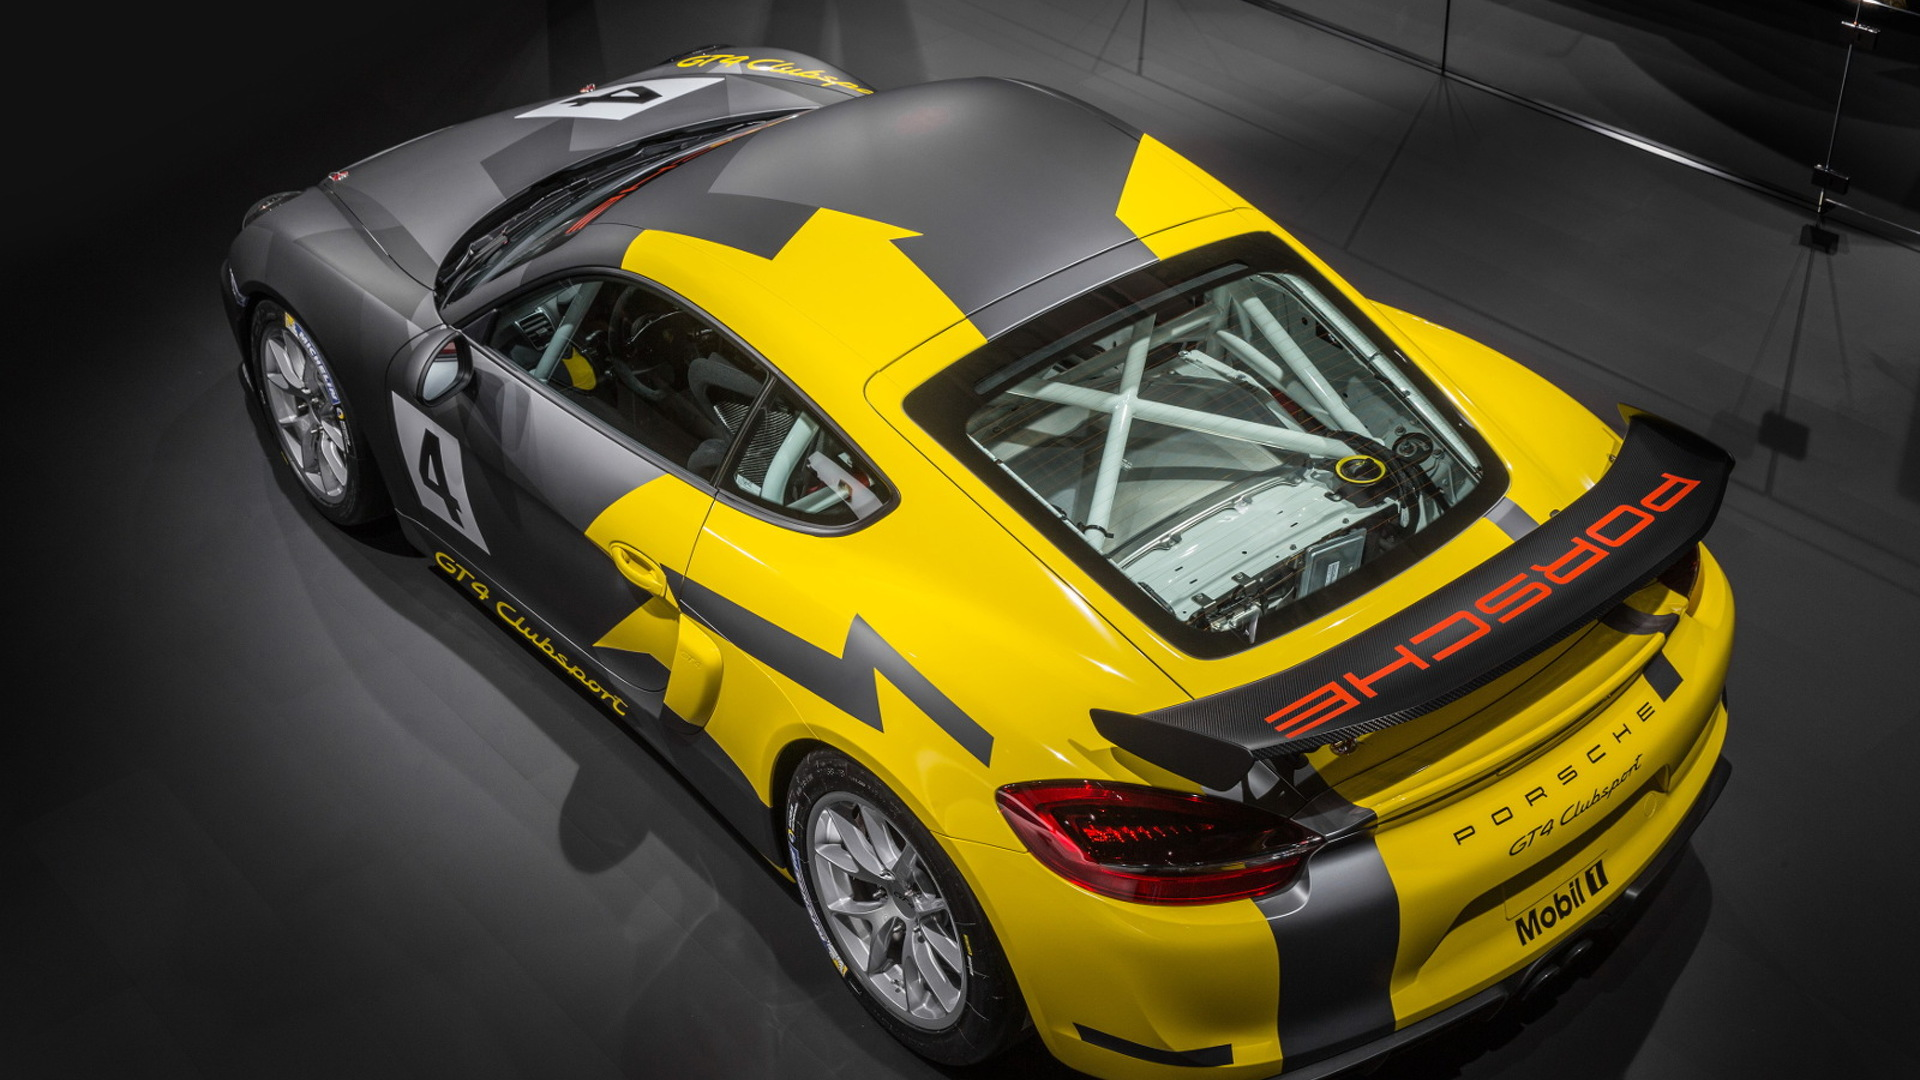 Porsche shows off the Cayman GT4 Clubsport in two promo videos